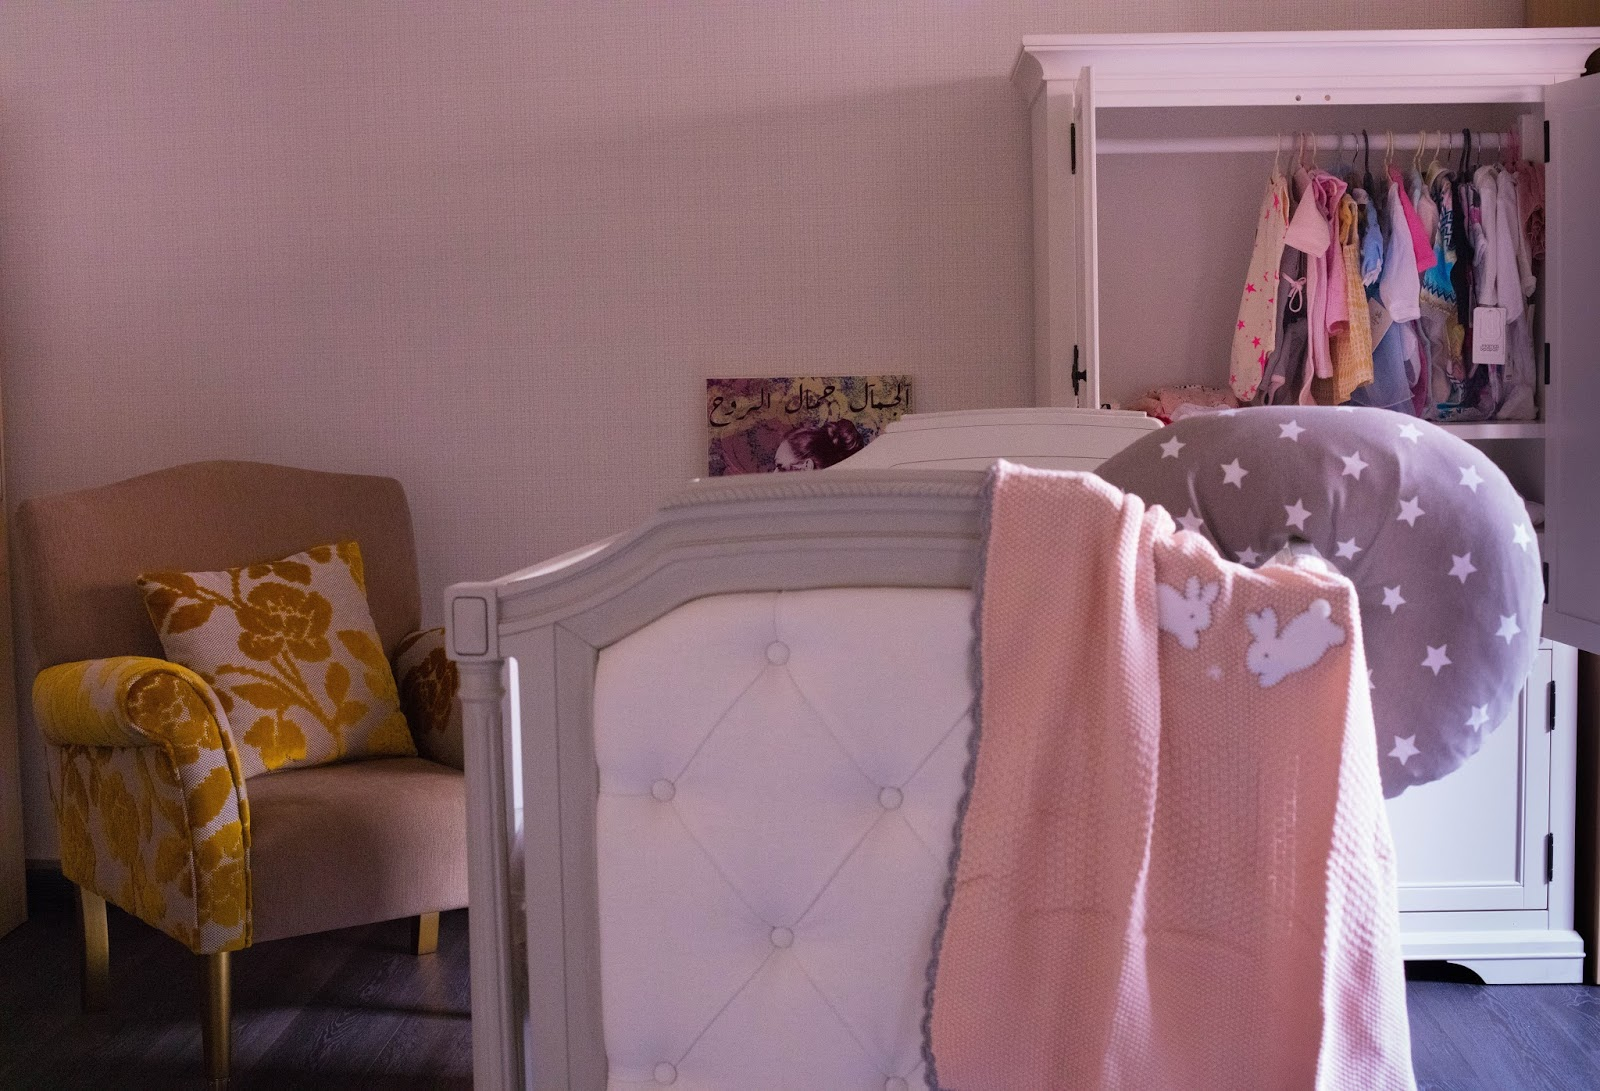 Baby bed youtube - Baby Room Tour On My Youtube Channel